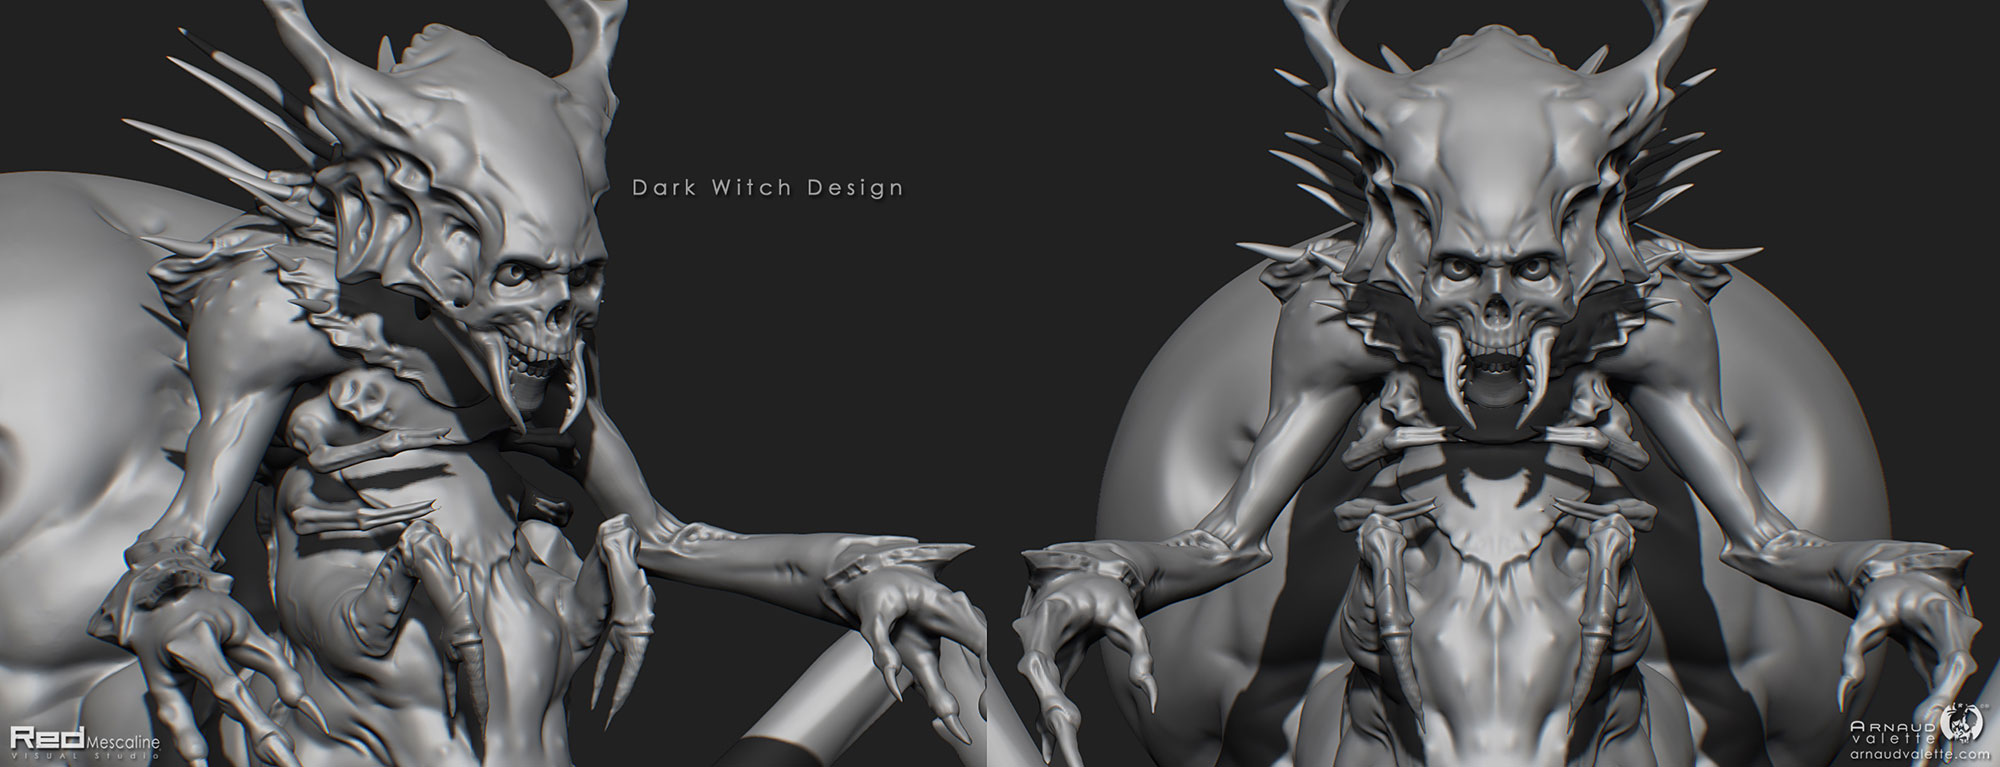 CR_DarkWitch_Sculpt_01.1001